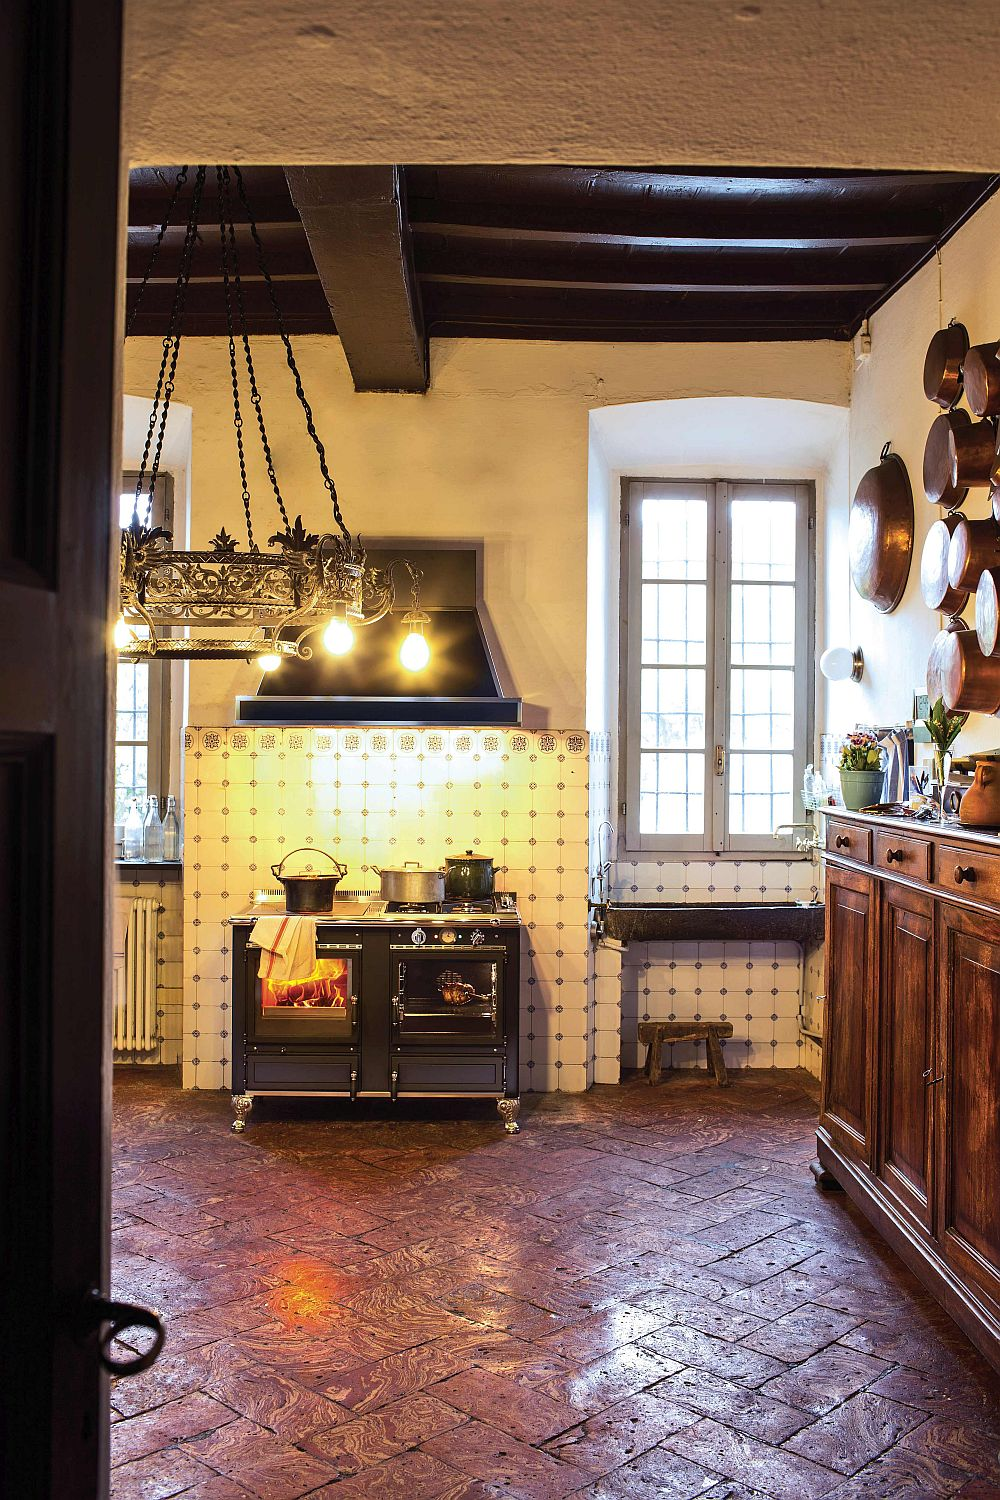 Fabulous wood-burning cooker for the rustic themed kitchen